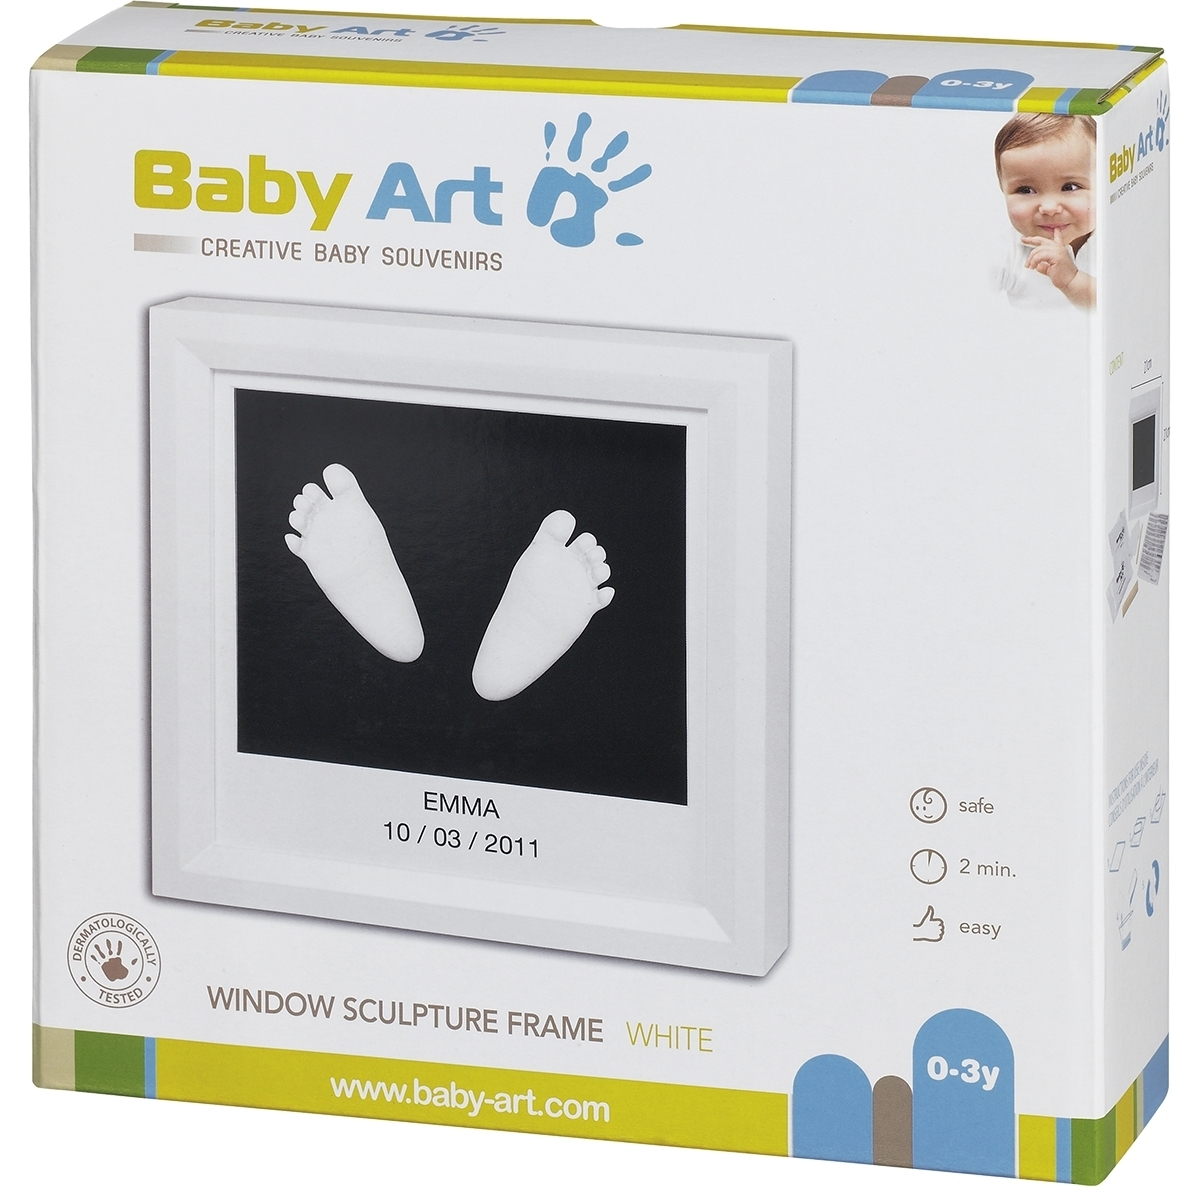 ������� Baby Art Sculpture Frame ����� � ������